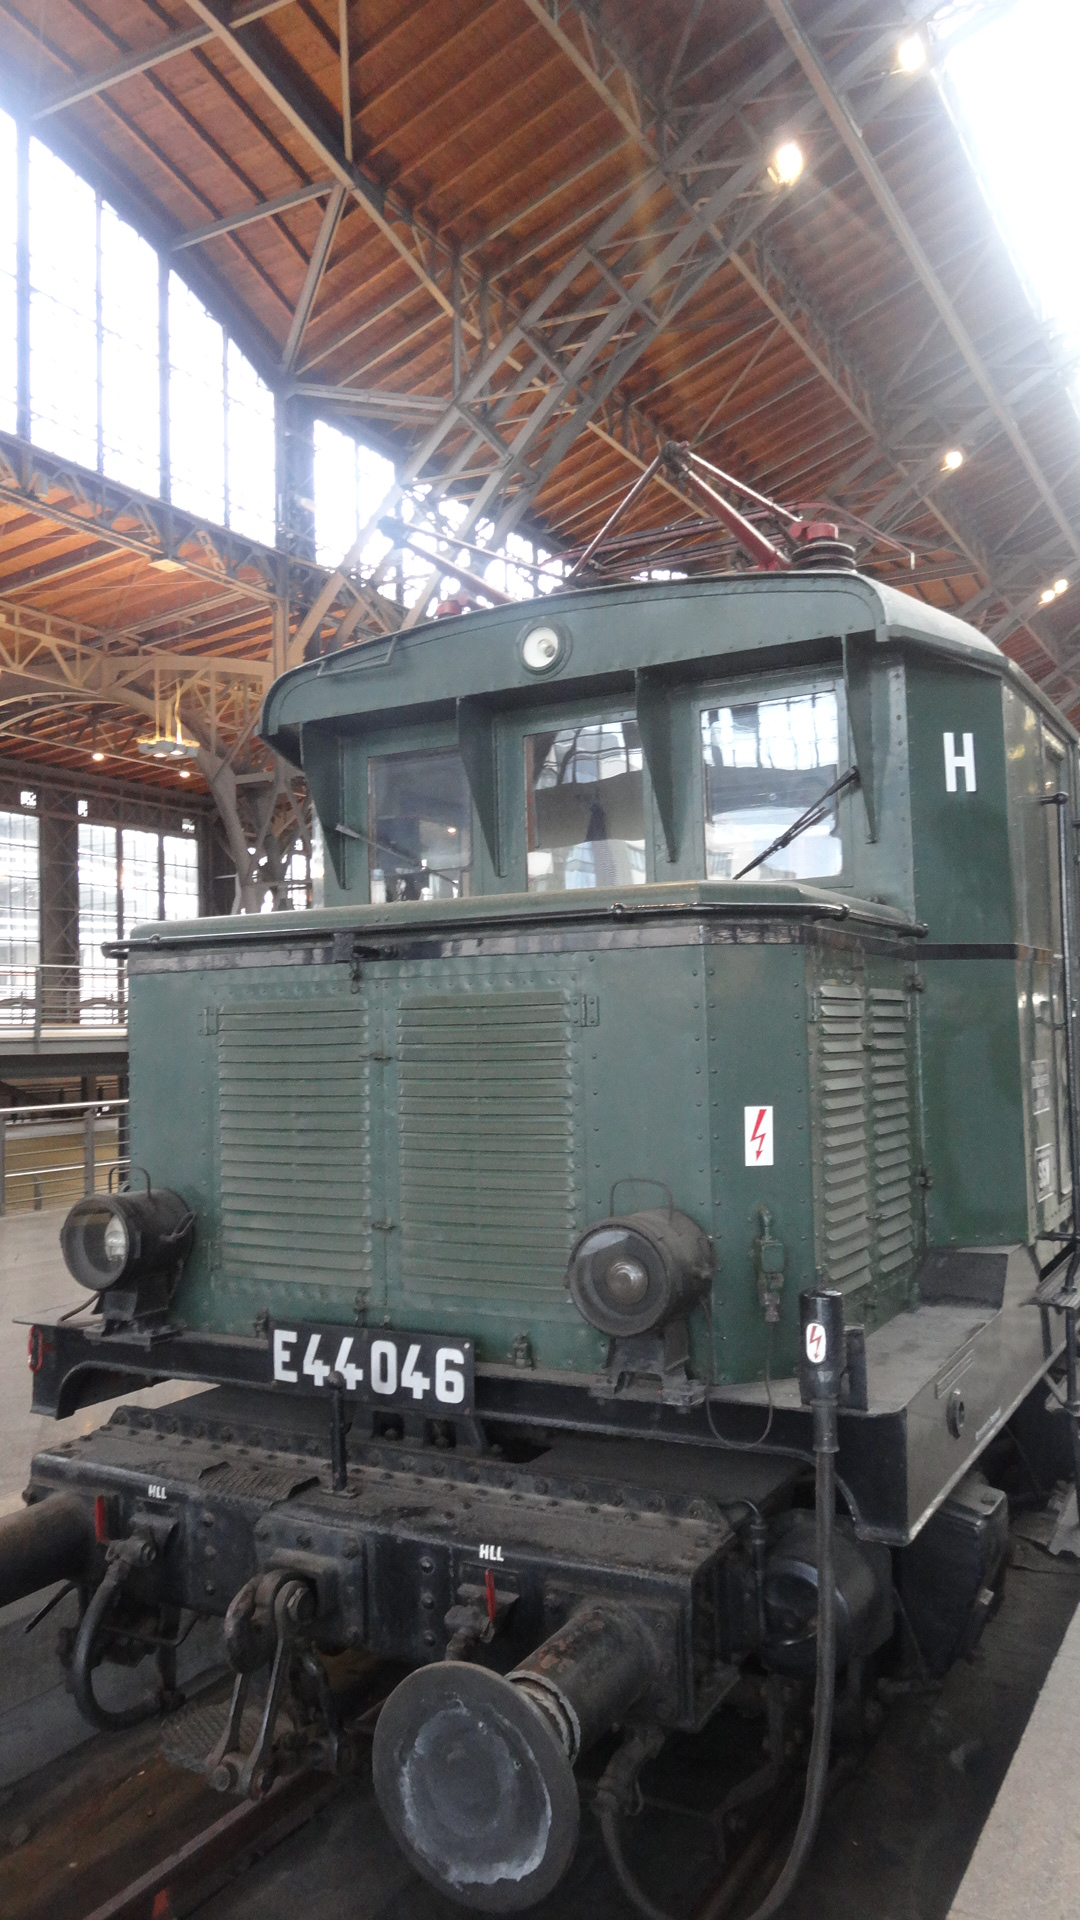 historic electronic locomotive E44-046